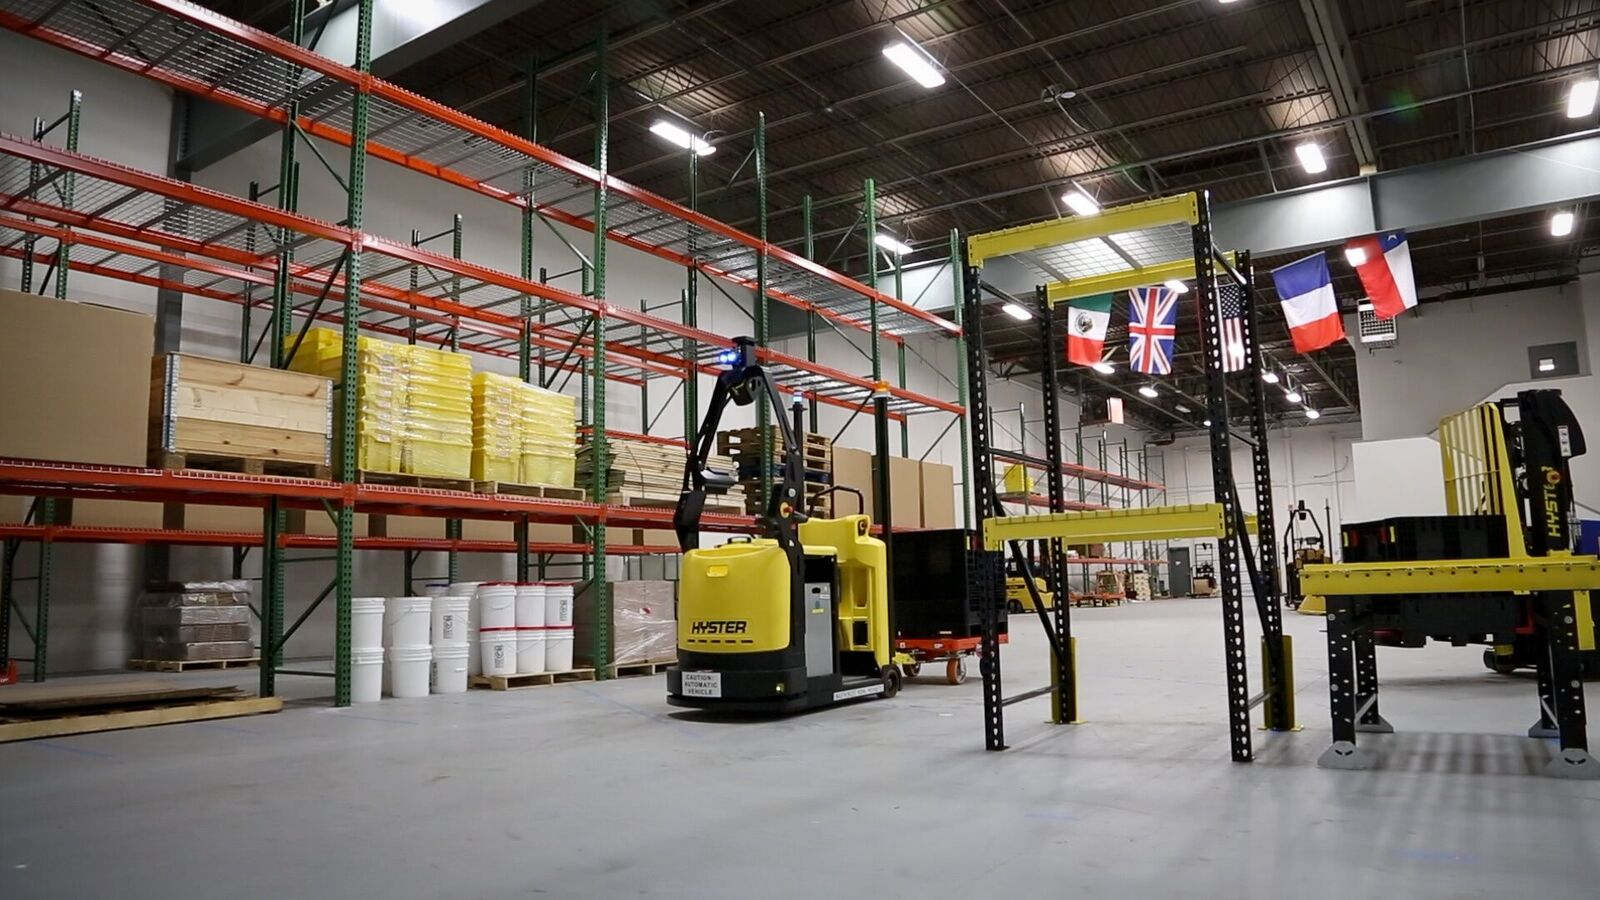 Robotic & Self-Guided Forklifts